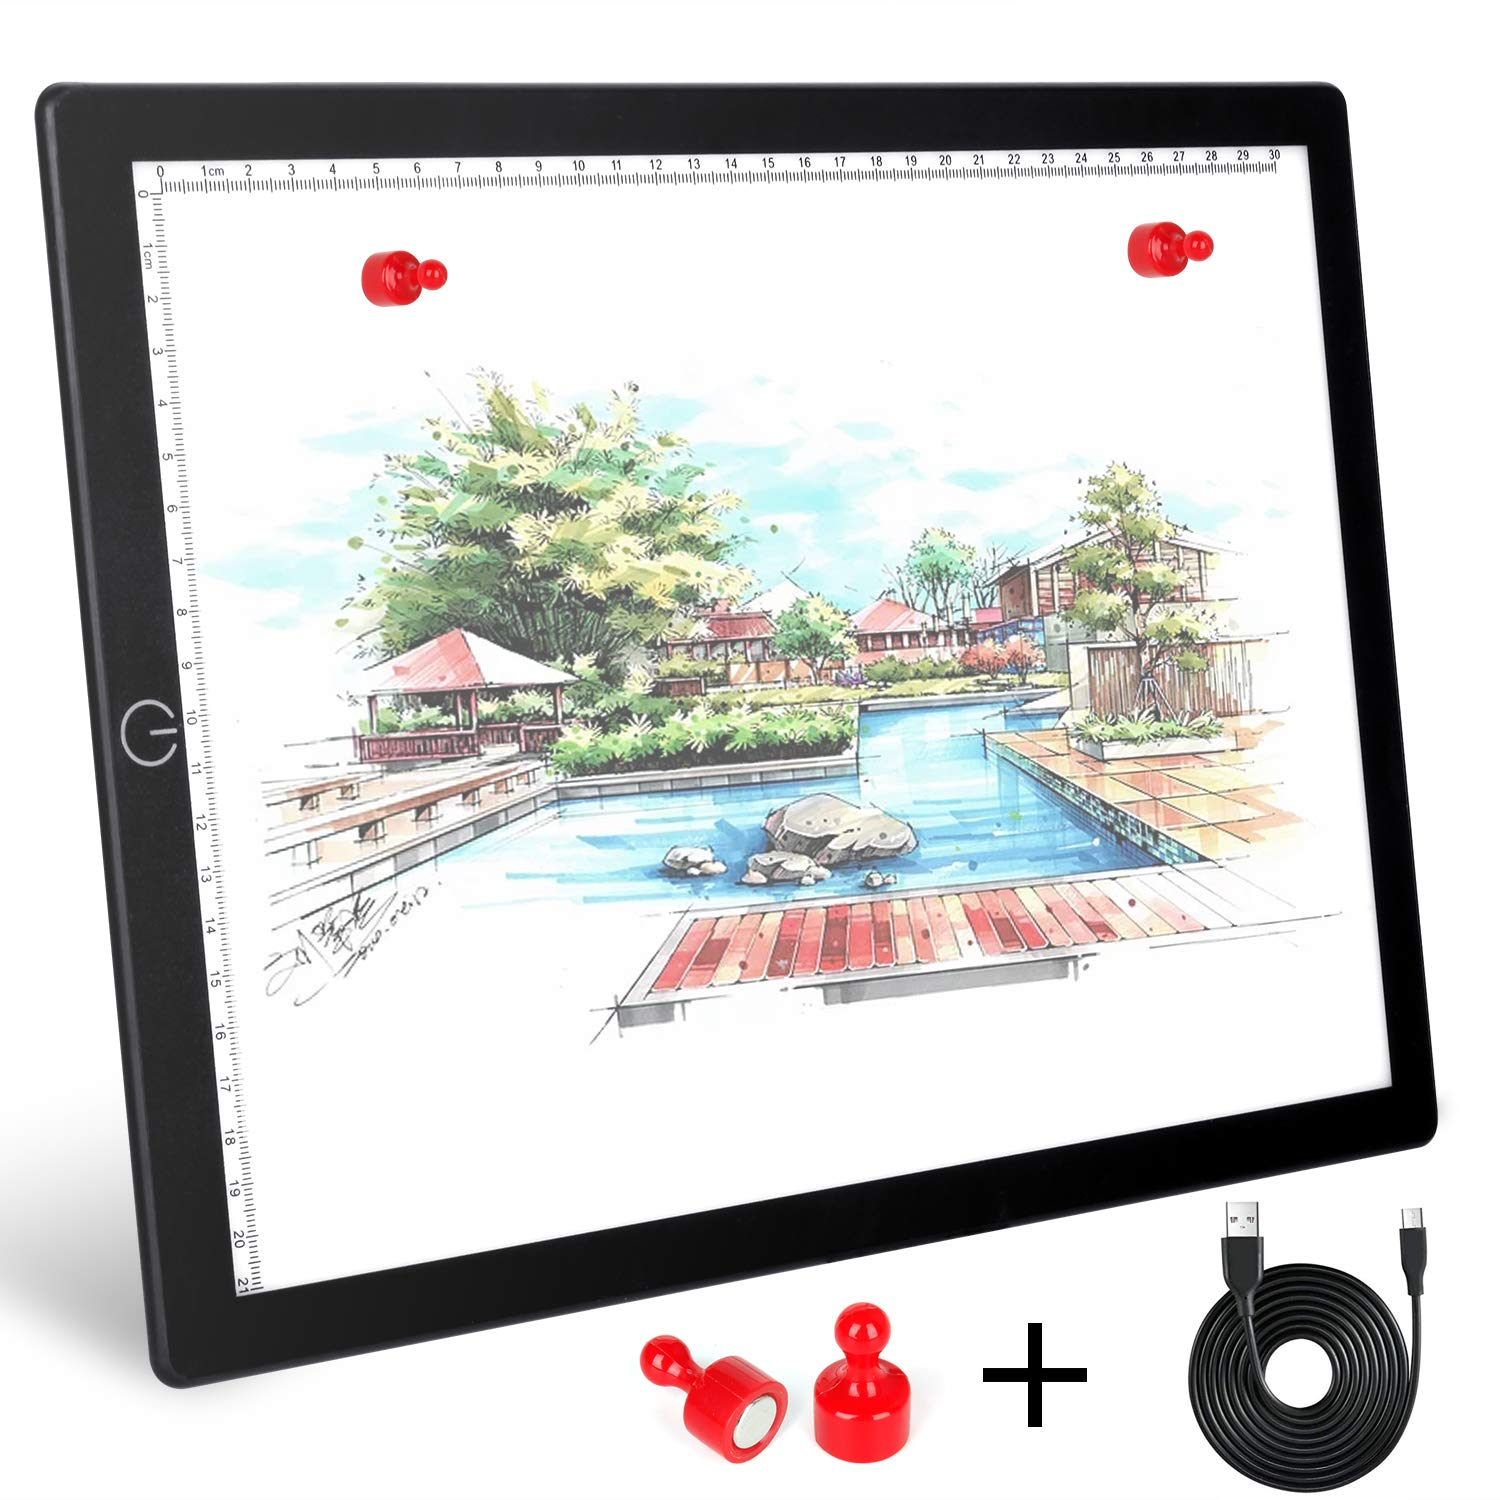 Magnetic A4 Light Box, LED Tracing Light Pad with Touch Button, Thin USB Powered Light Board with Adjustable Brightness for Tattoo Artists, Animation, Sketching, Stenciling, X-Ray Viewing by LIFUN